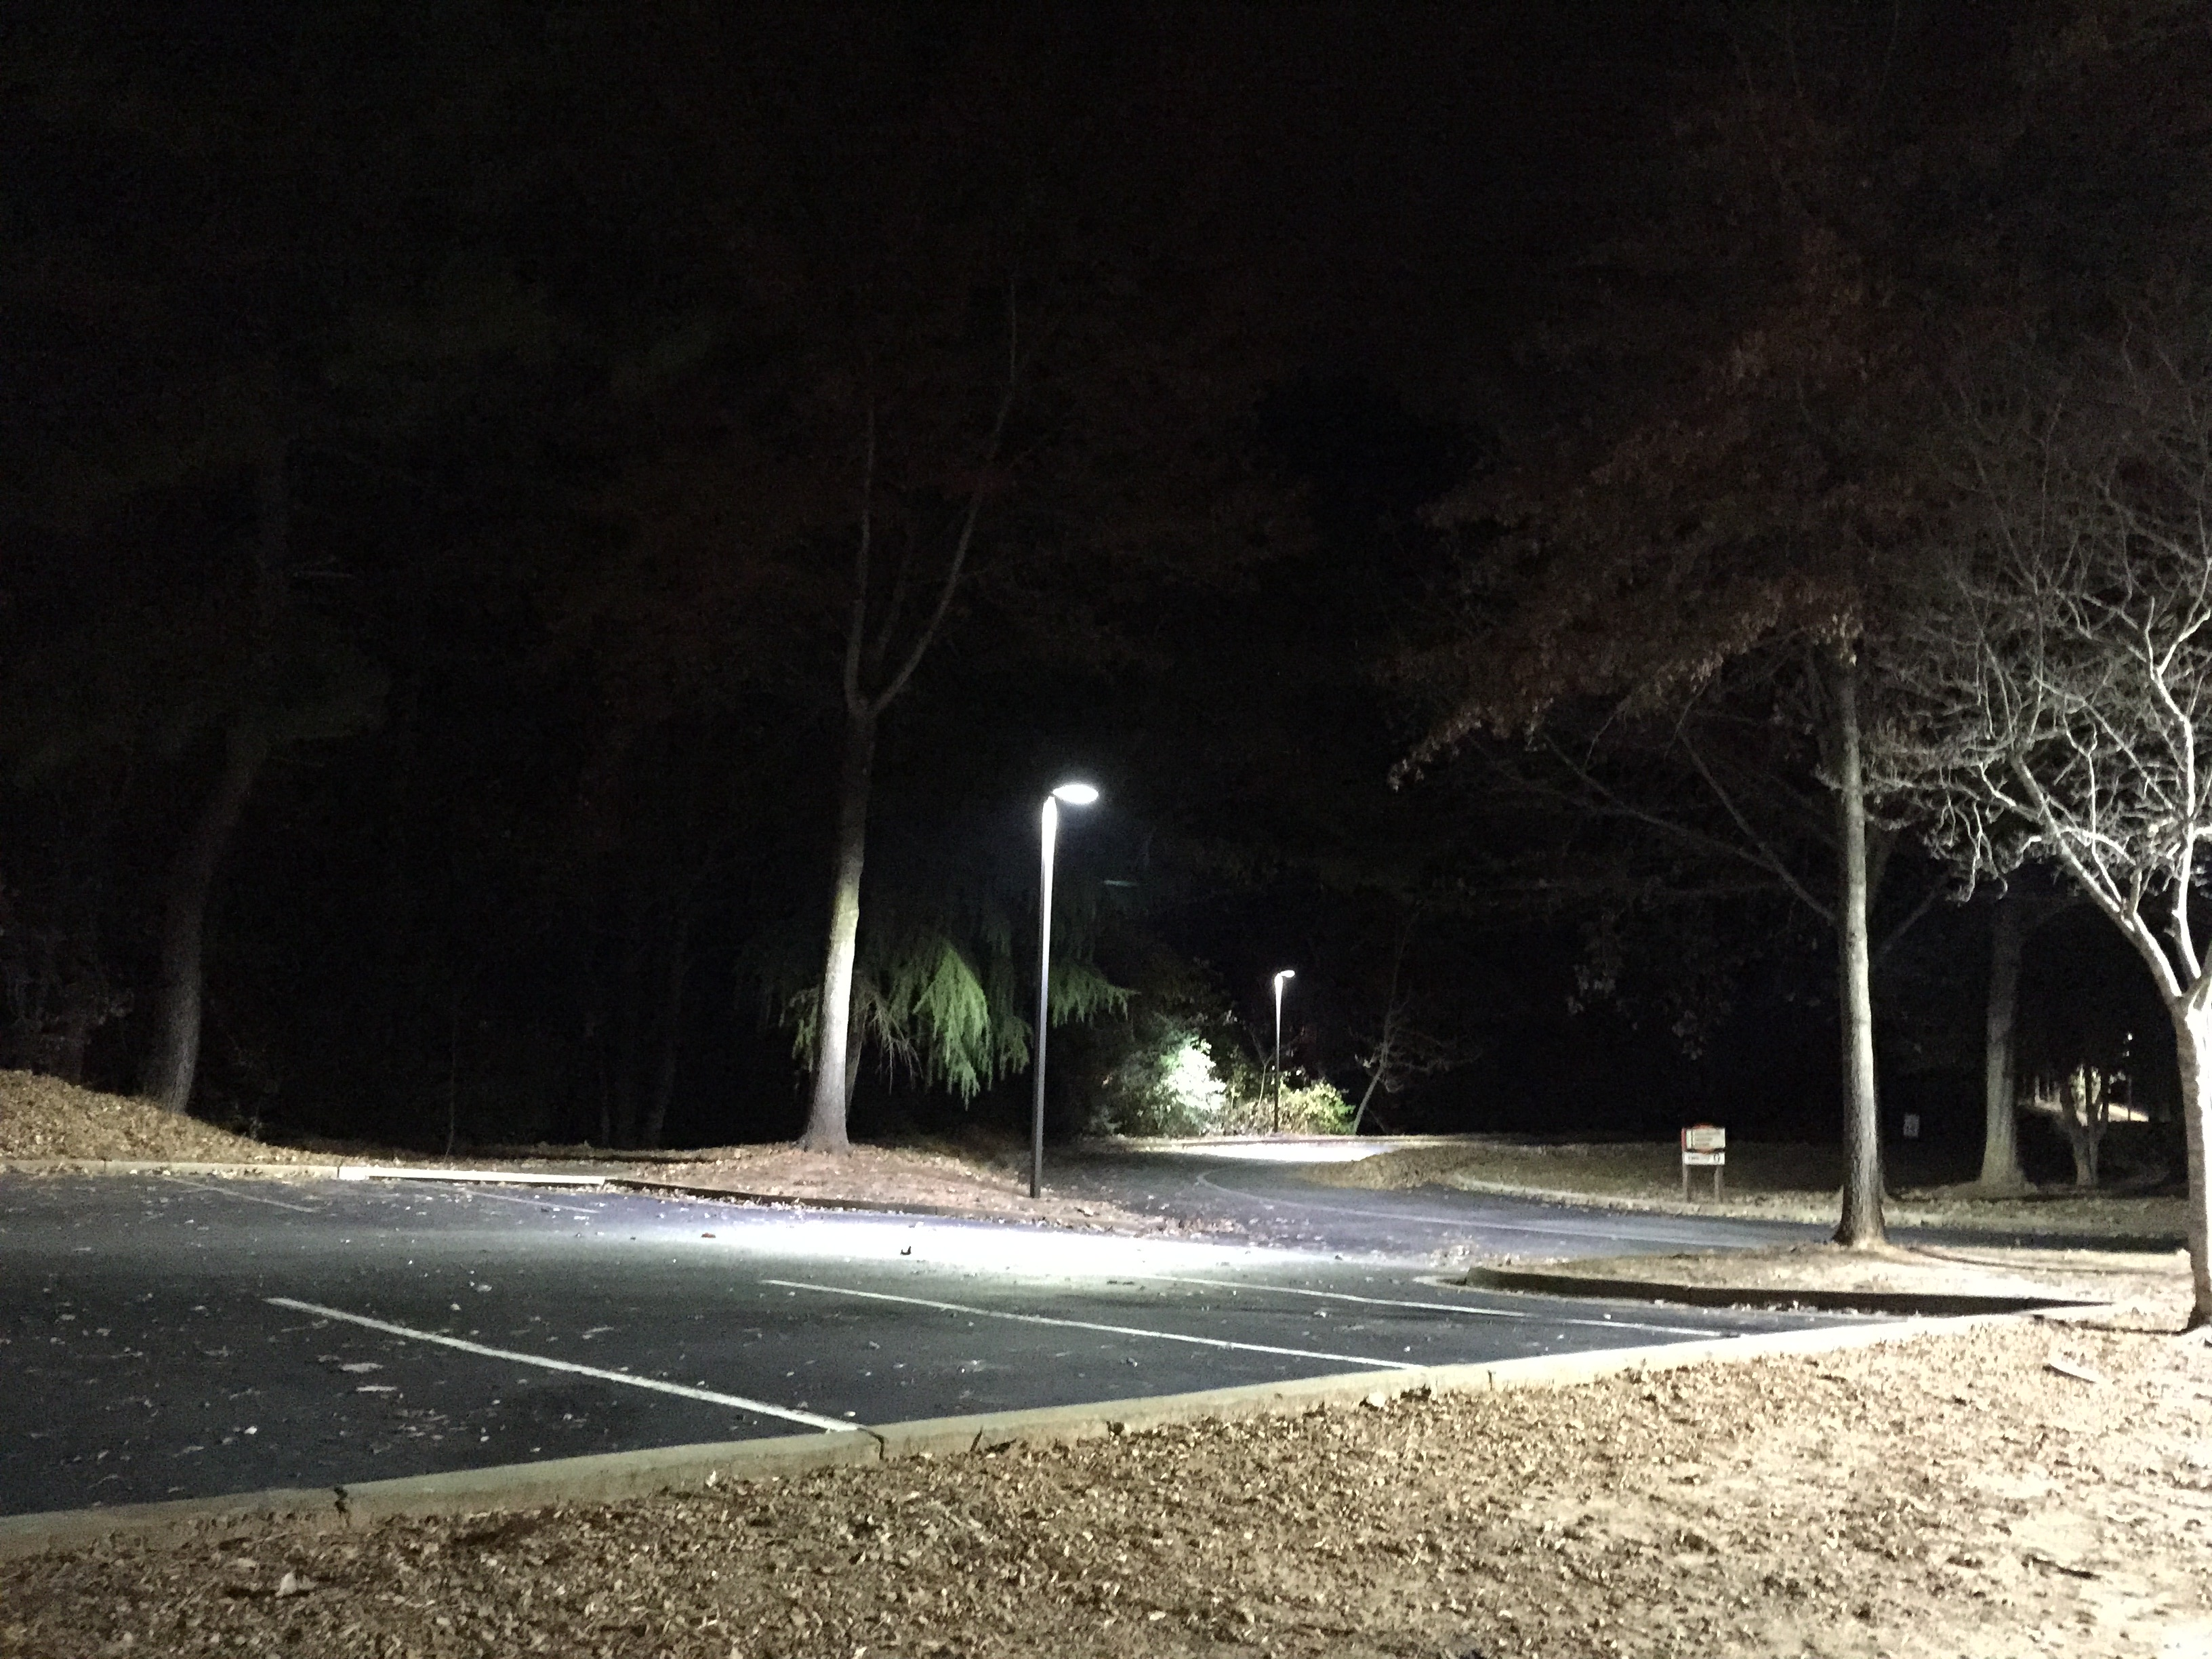 Dolce Conference Center, Peachtree City, GA